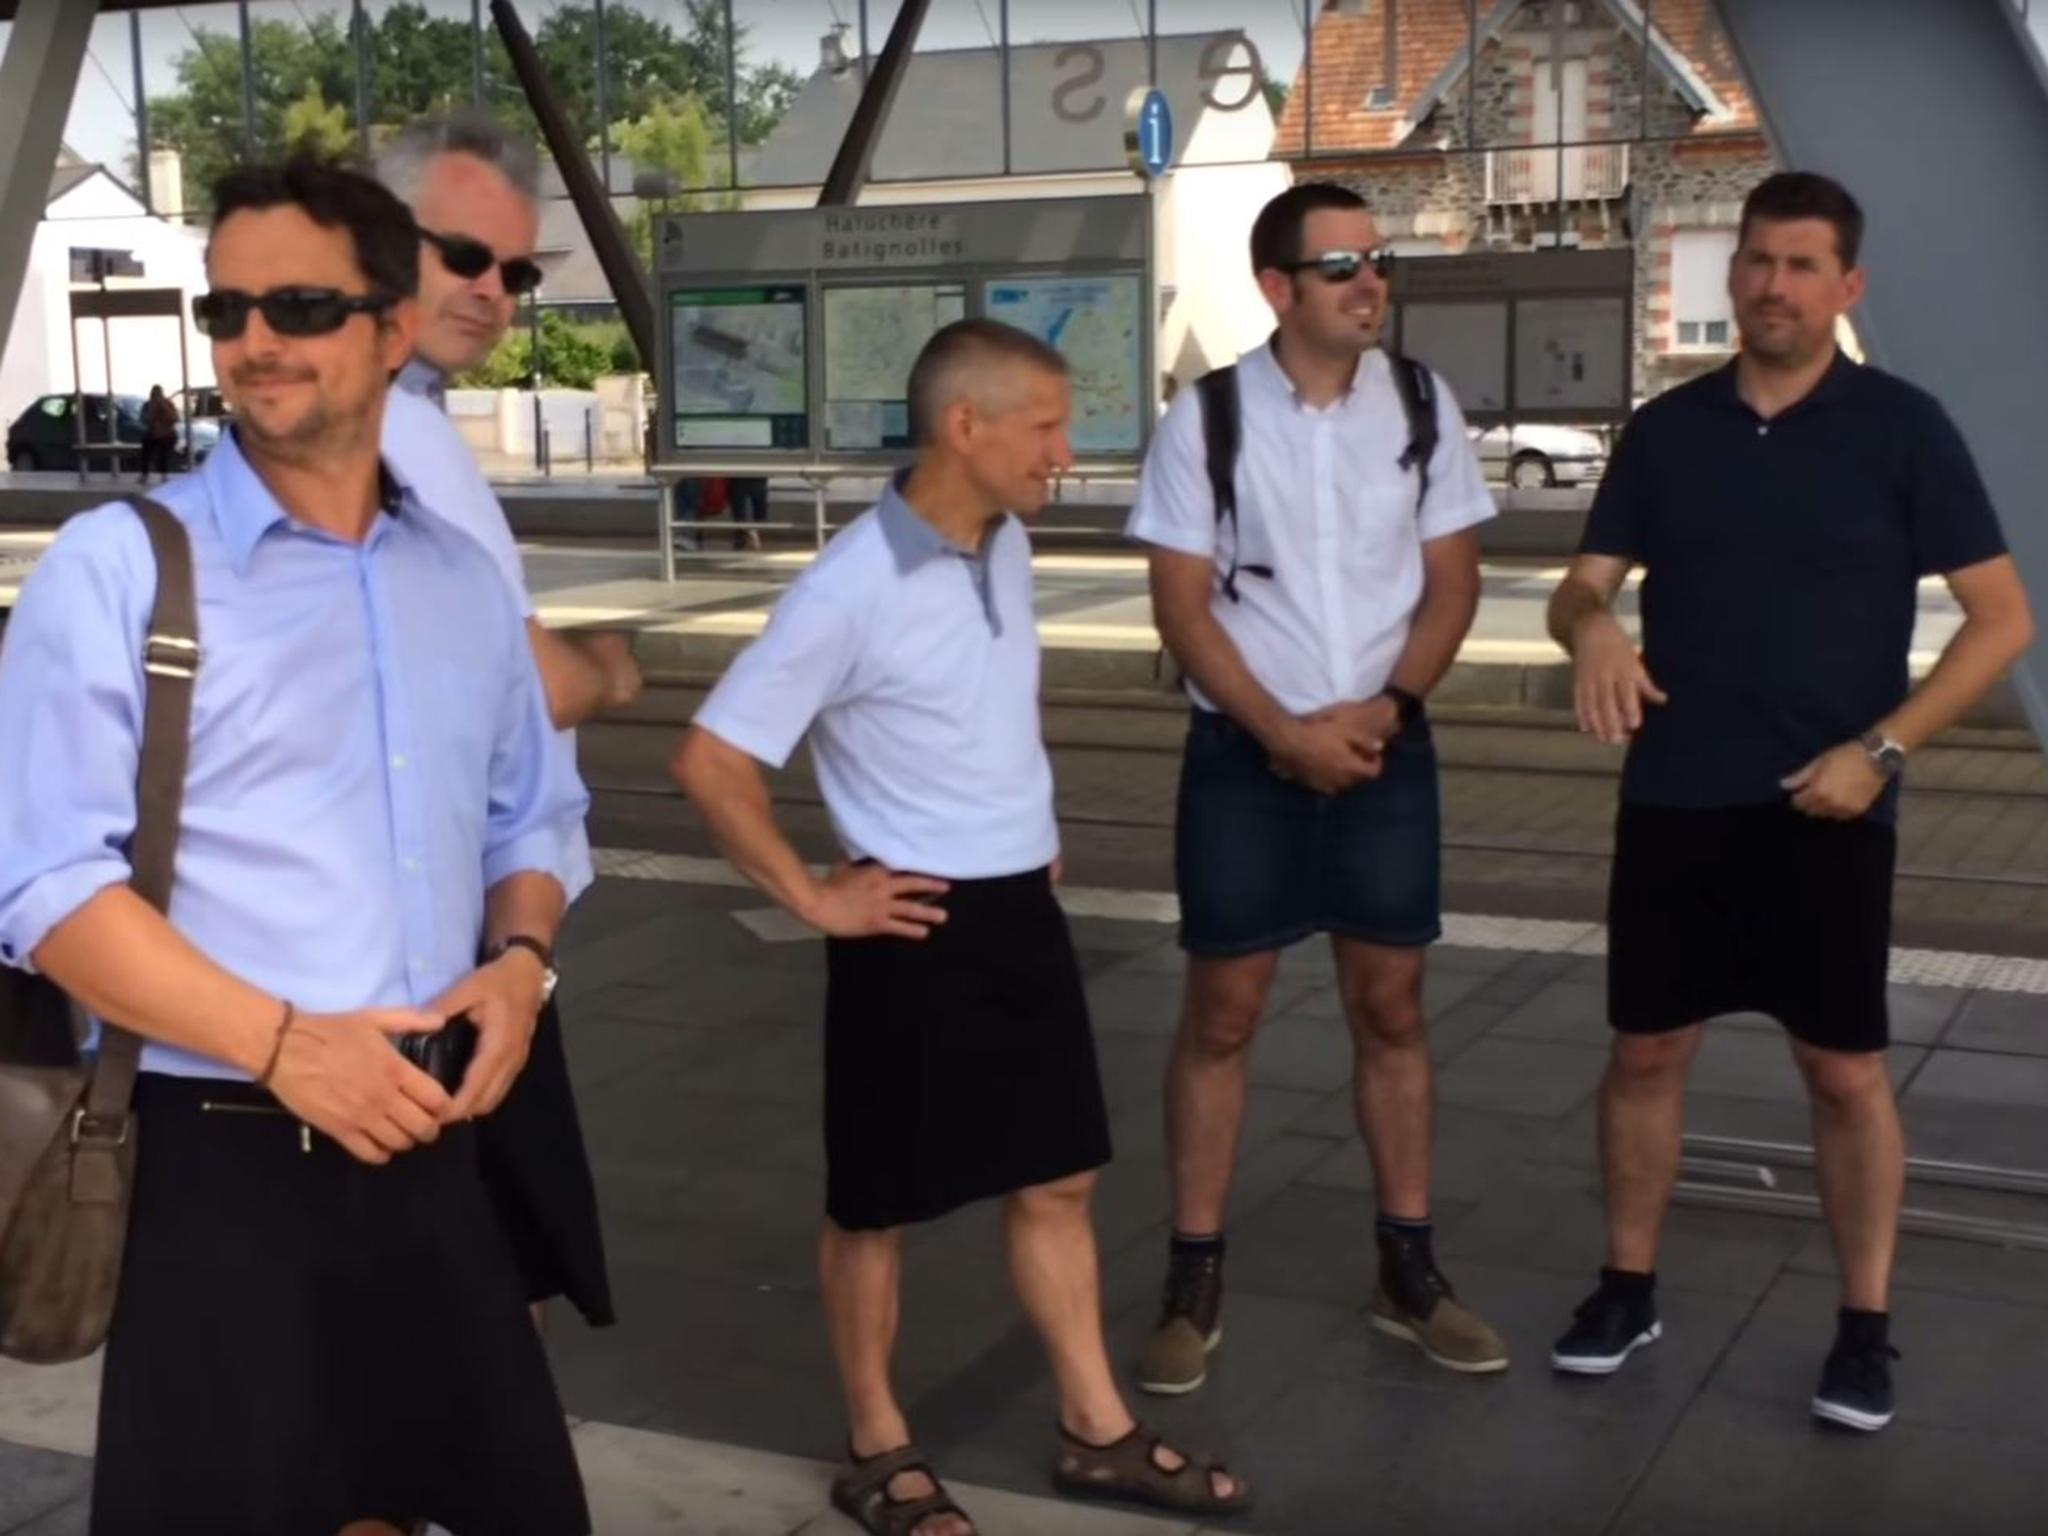 Weather latest: French bus drivers wear skirts to get around ban on shorts during heatwave